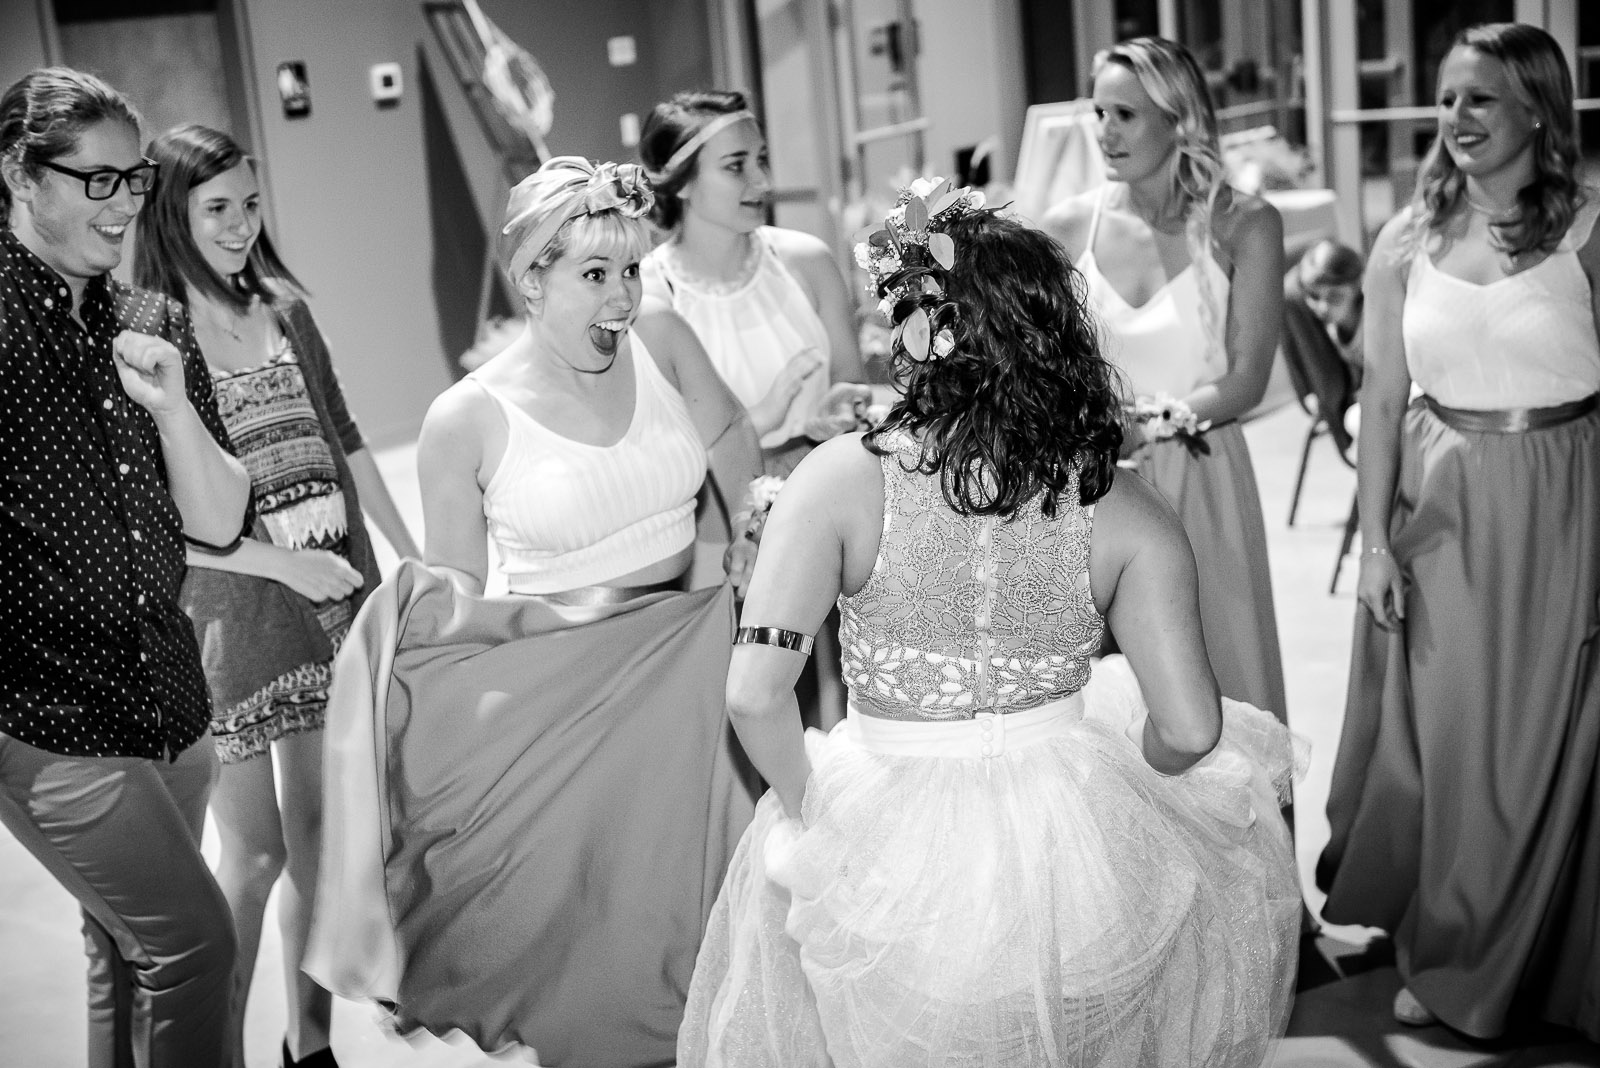 Eric_and_Christy_Photography_Blog_Wedding_Lauren_Jon-60